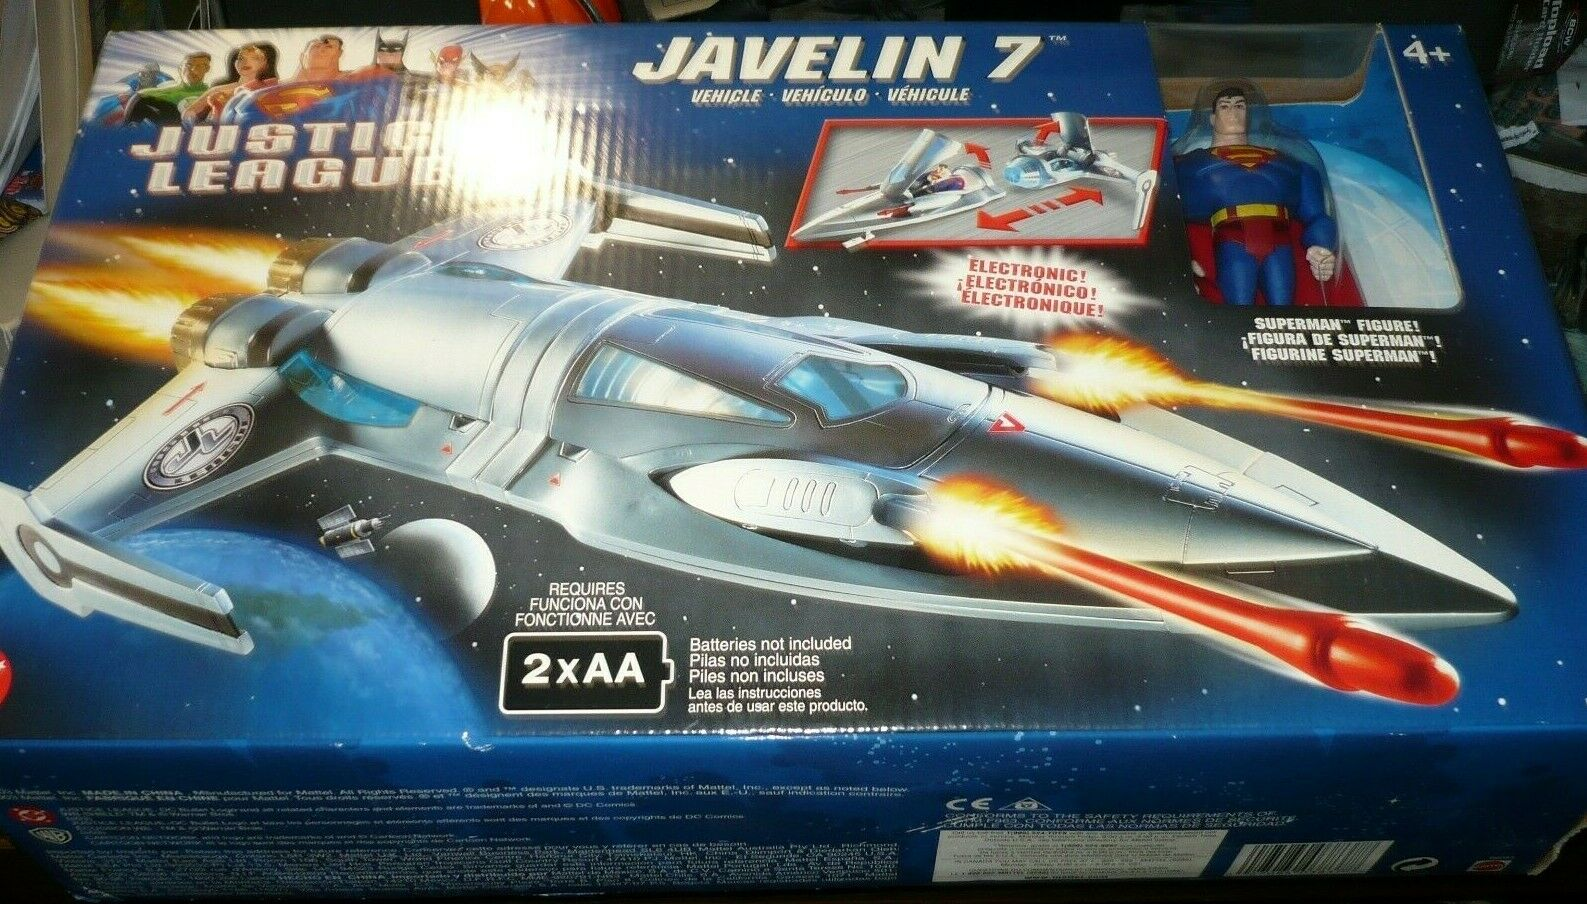 Justice League Electronic JAVELIN 7 w Superman WirkungFig New Factory Meerled 200